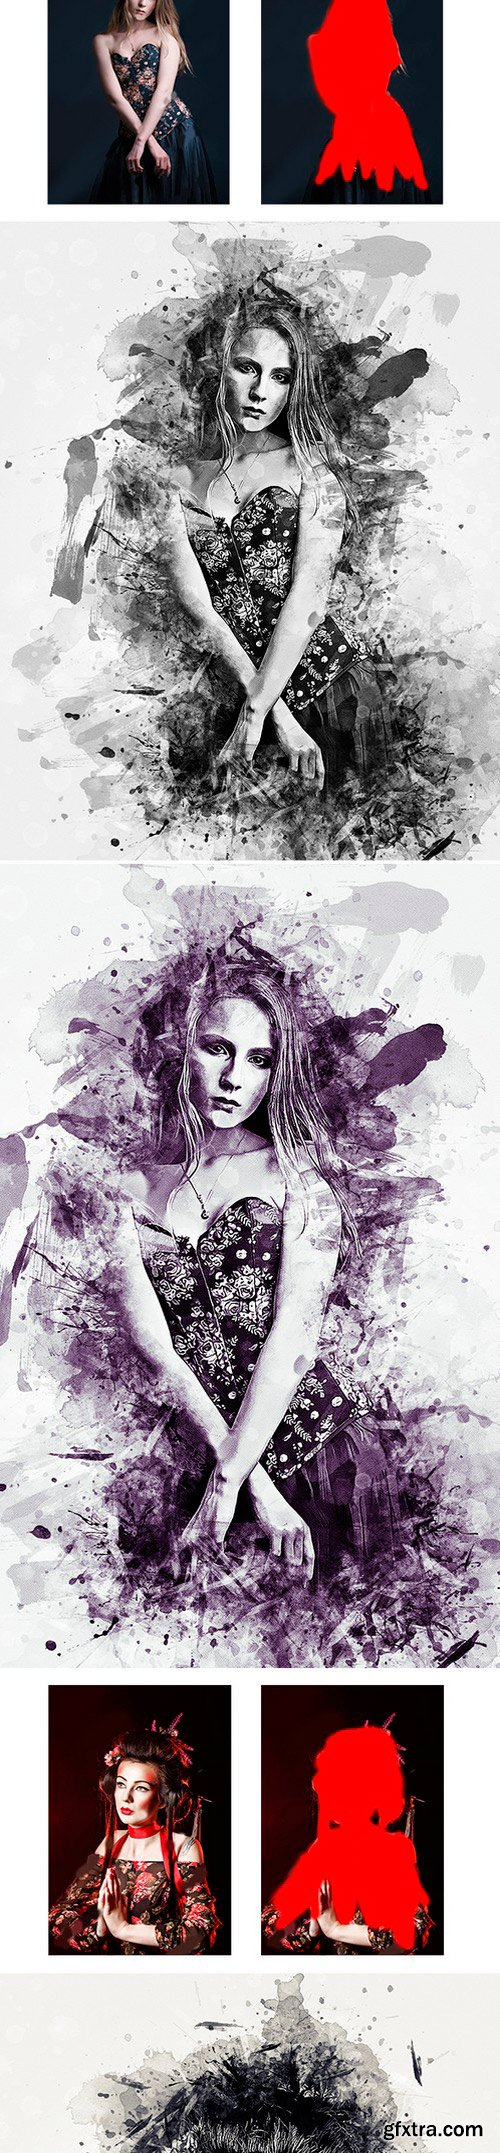 Graphicriver - Modern Art photoshop action 21836053